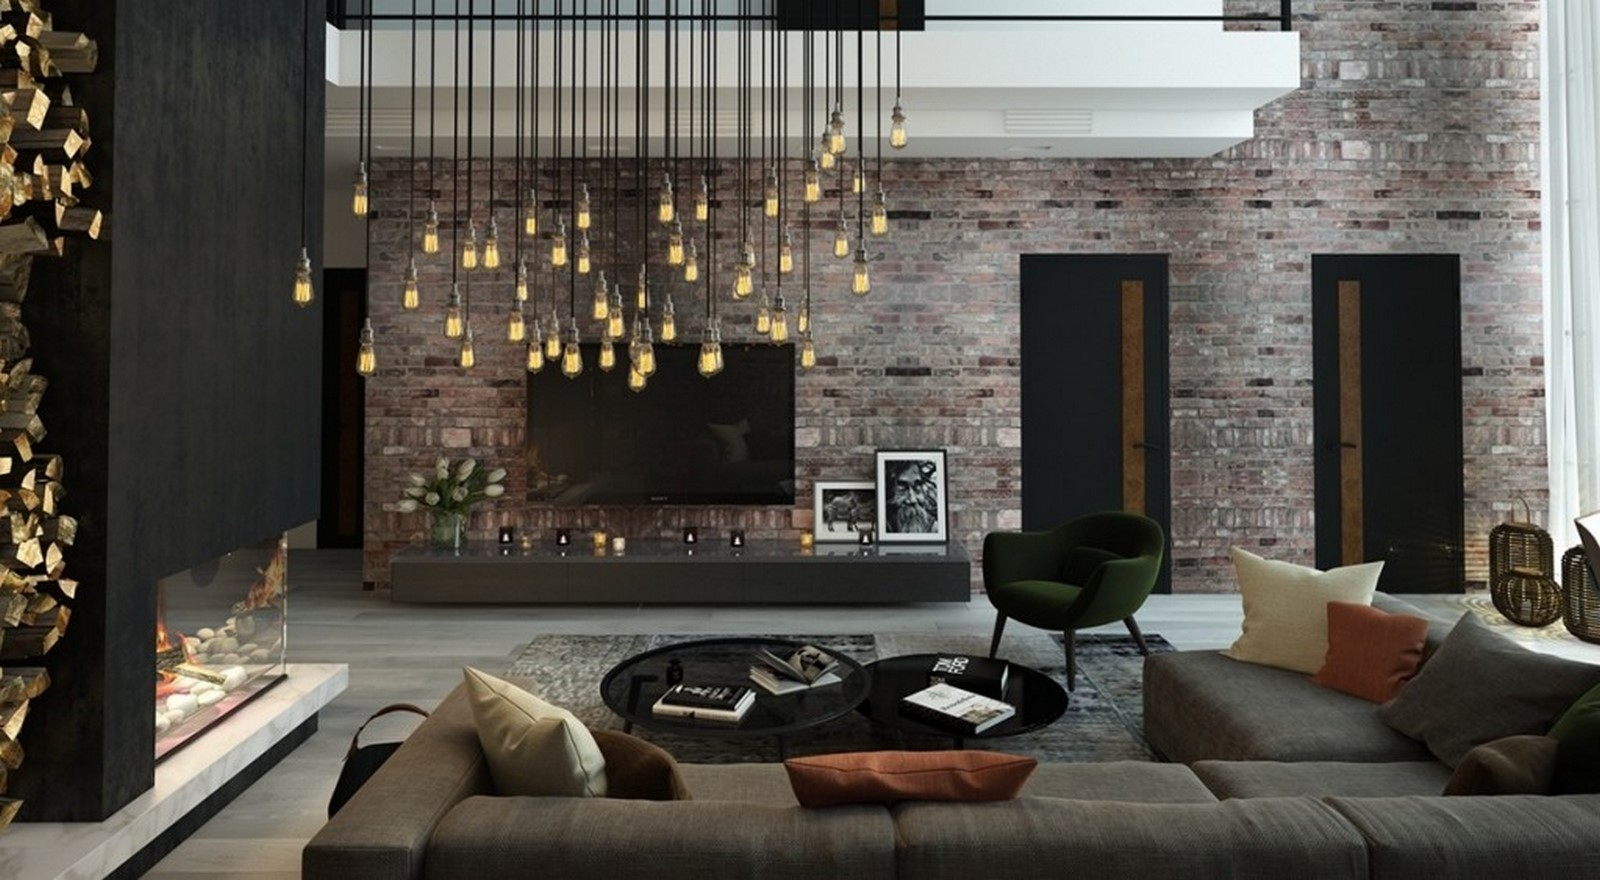 10 Tips to Renovate your House without hampering your budget - Sheet12